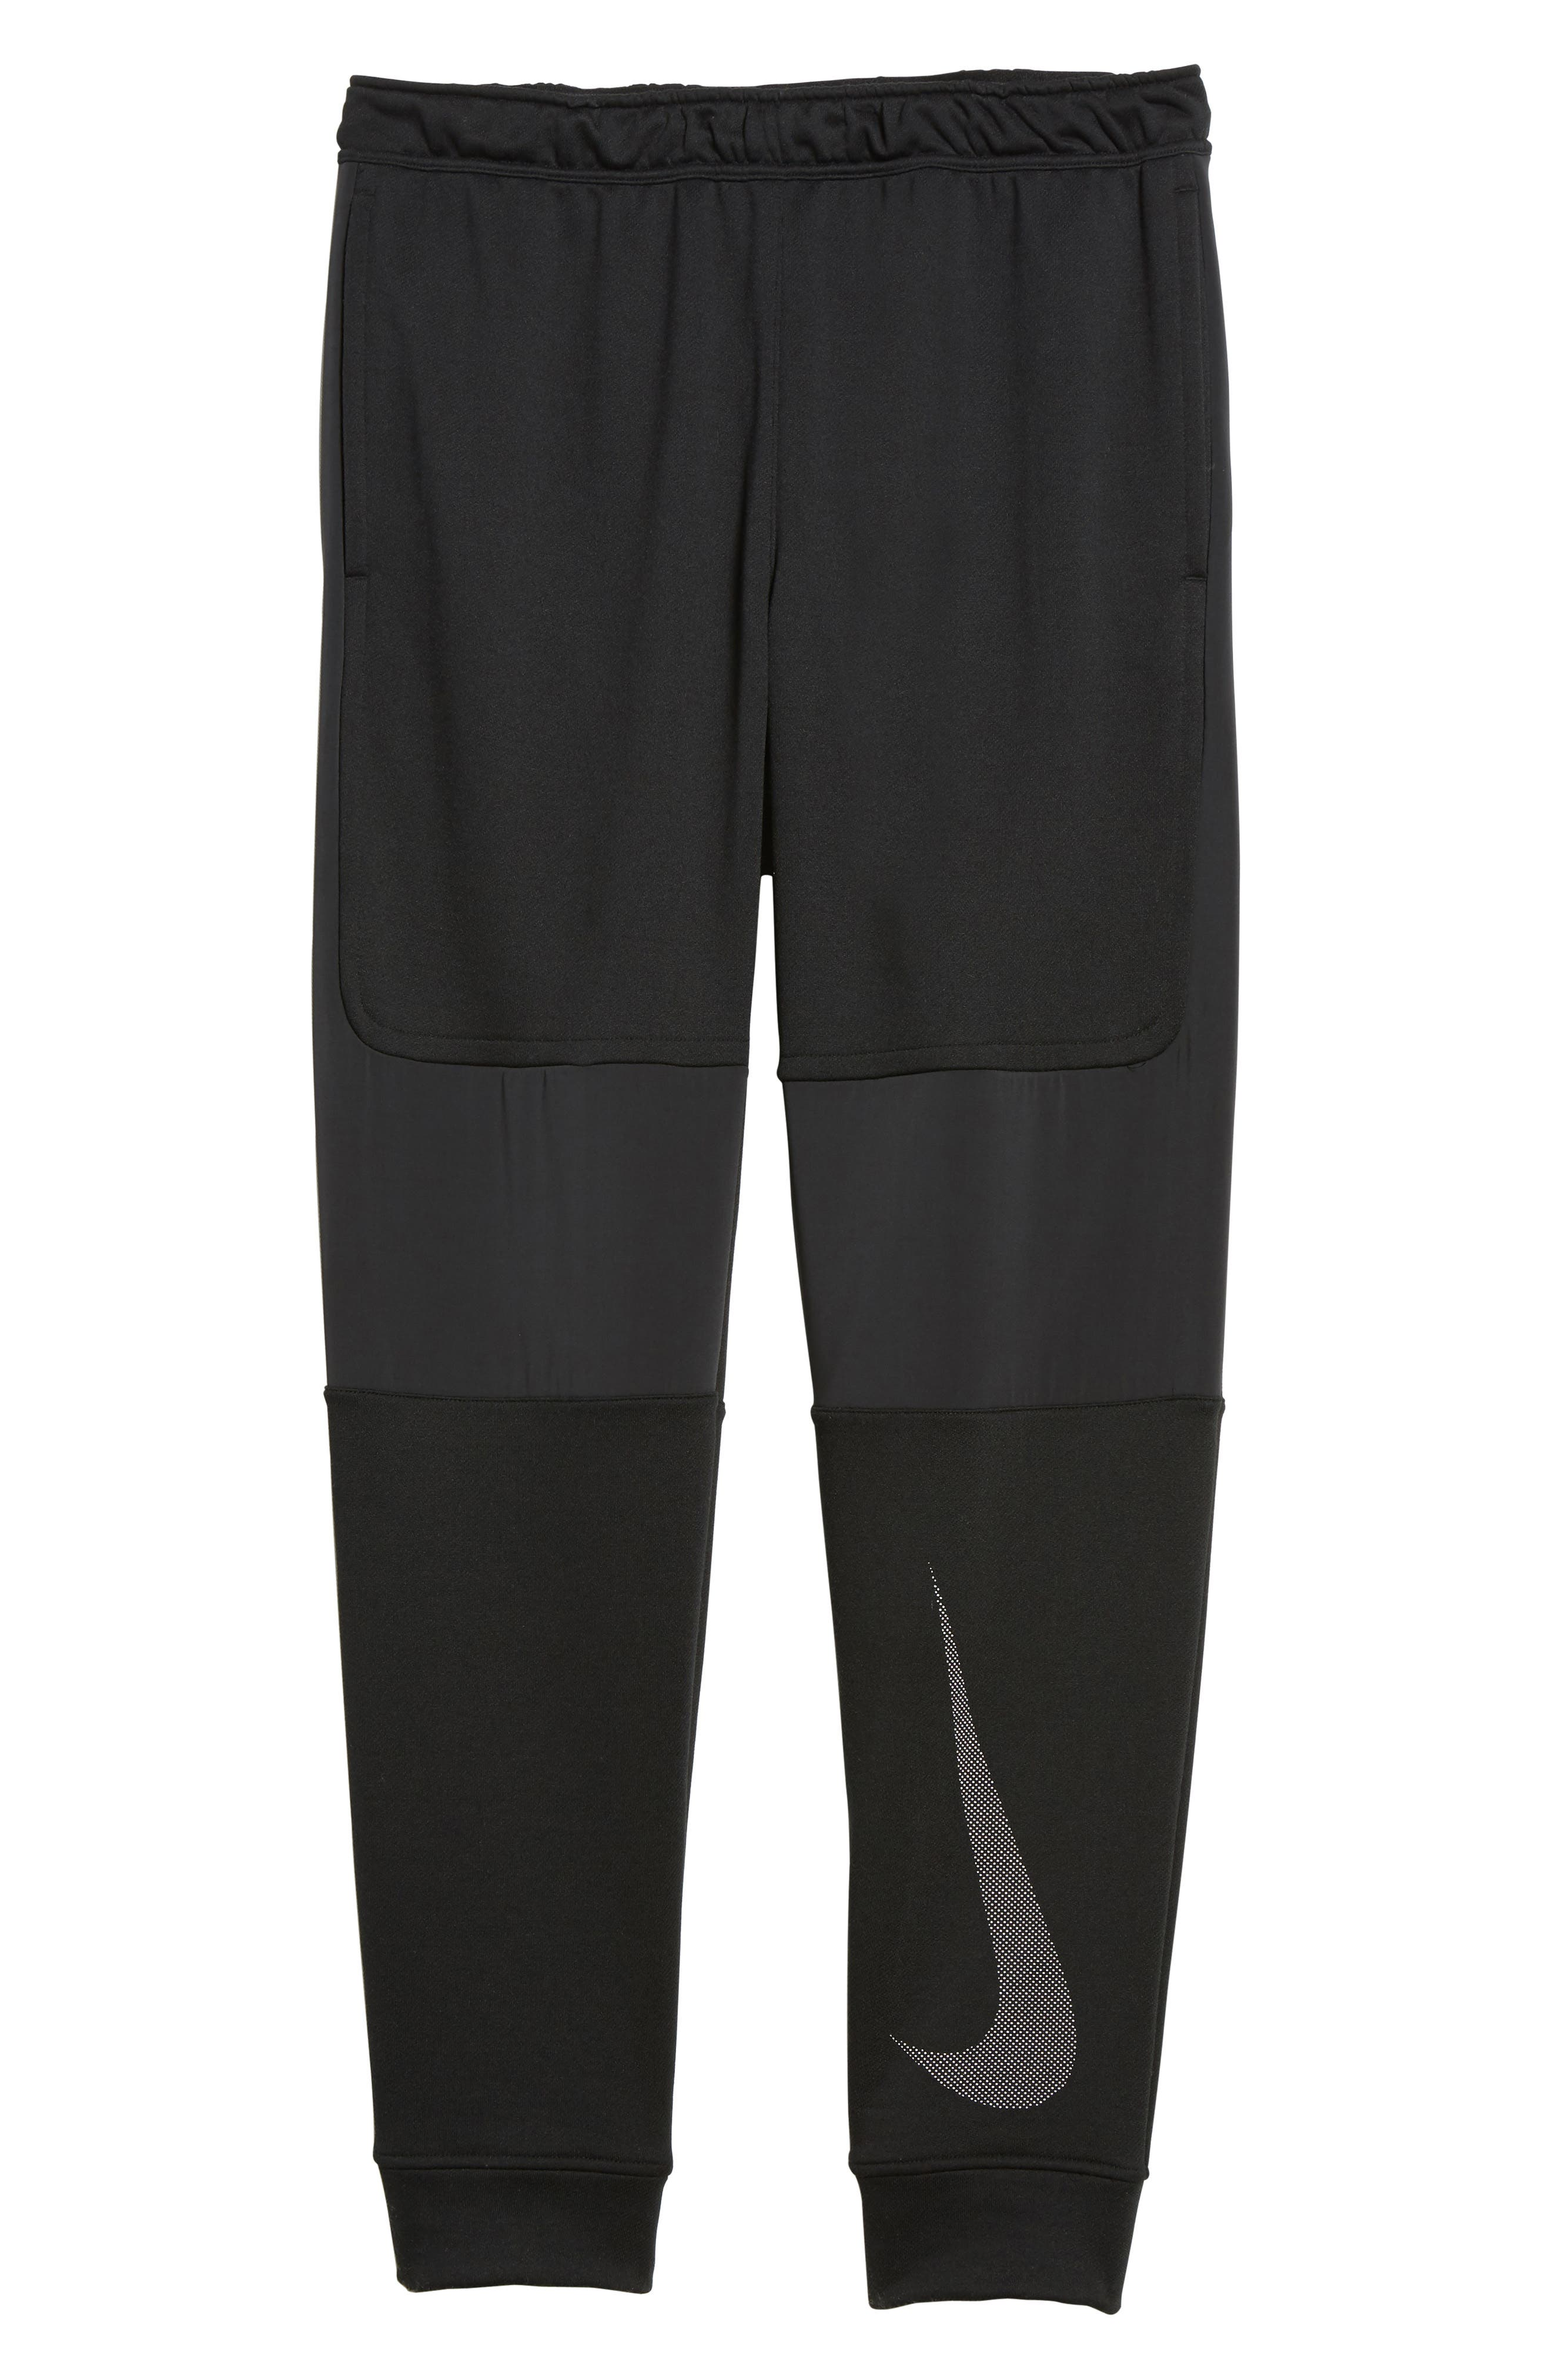 Training Project X Jogger Pants,                             Alternate thumbnail 6, color,                             010